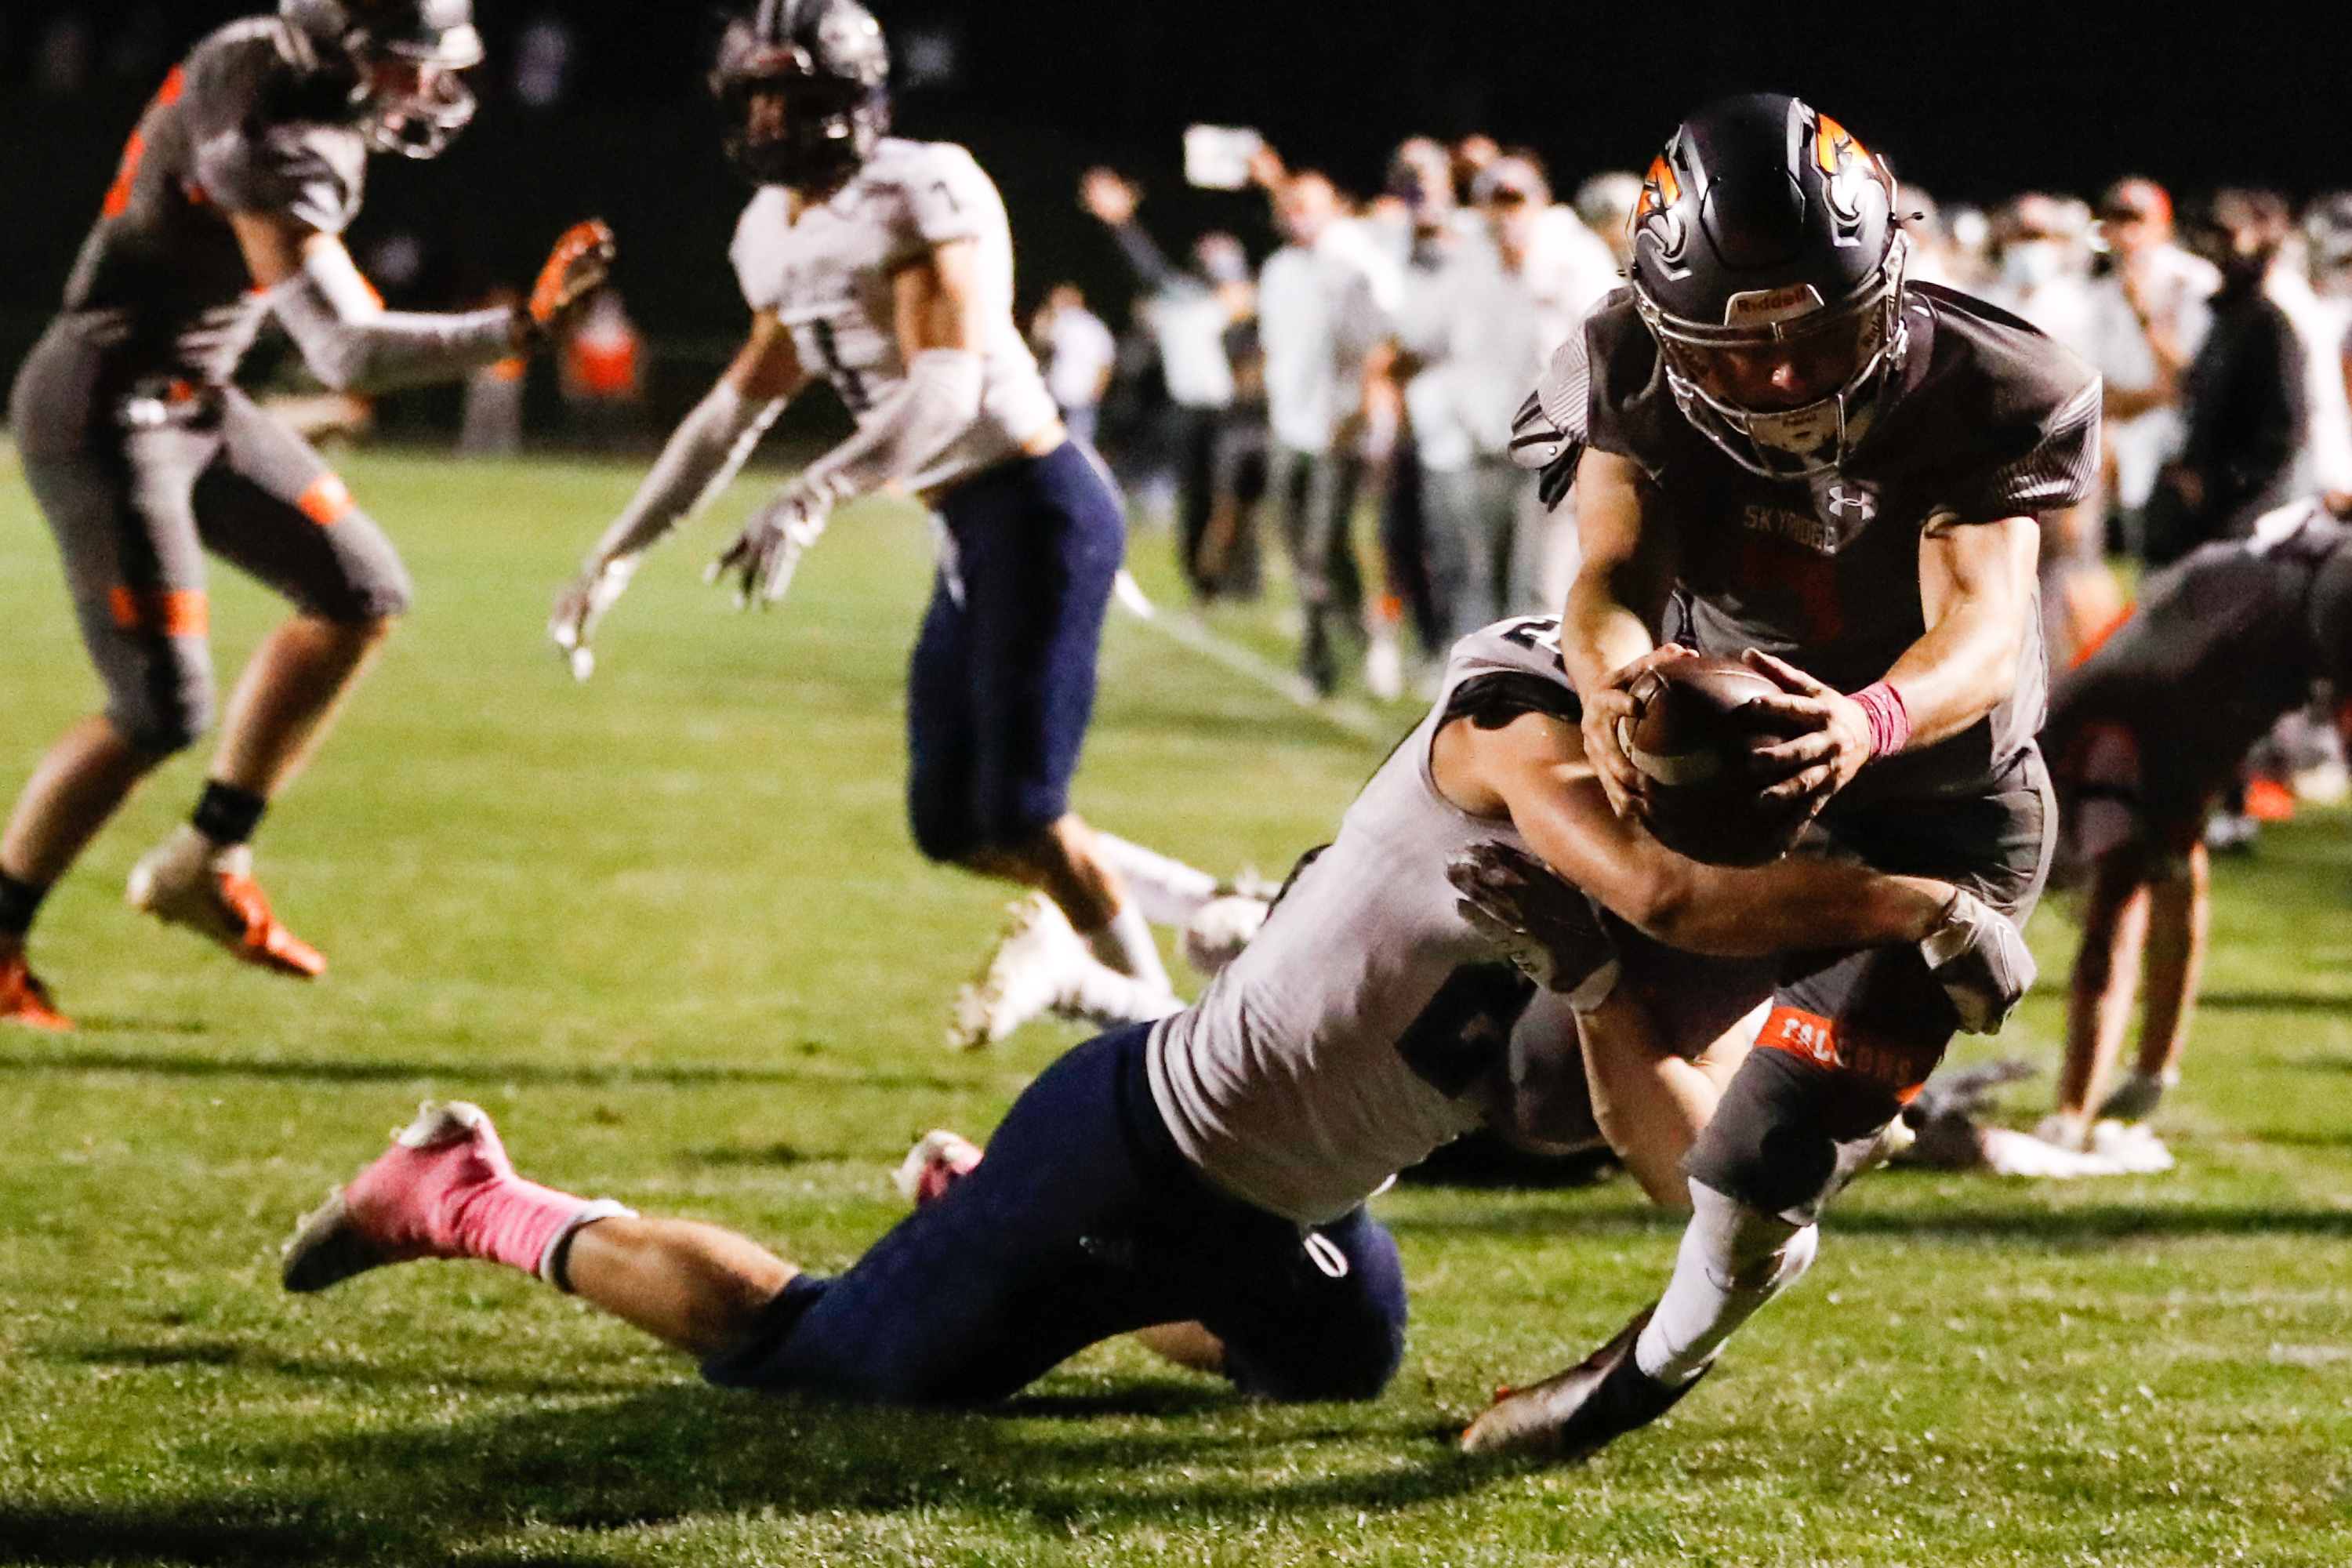 Skyridge's McCae Hillstead (7) carries the ball into the end zone for a touchdown during a high school football game against Corner Canyon at Skyridge High School in Lehi on Thursday, Oct. 8, 2020.